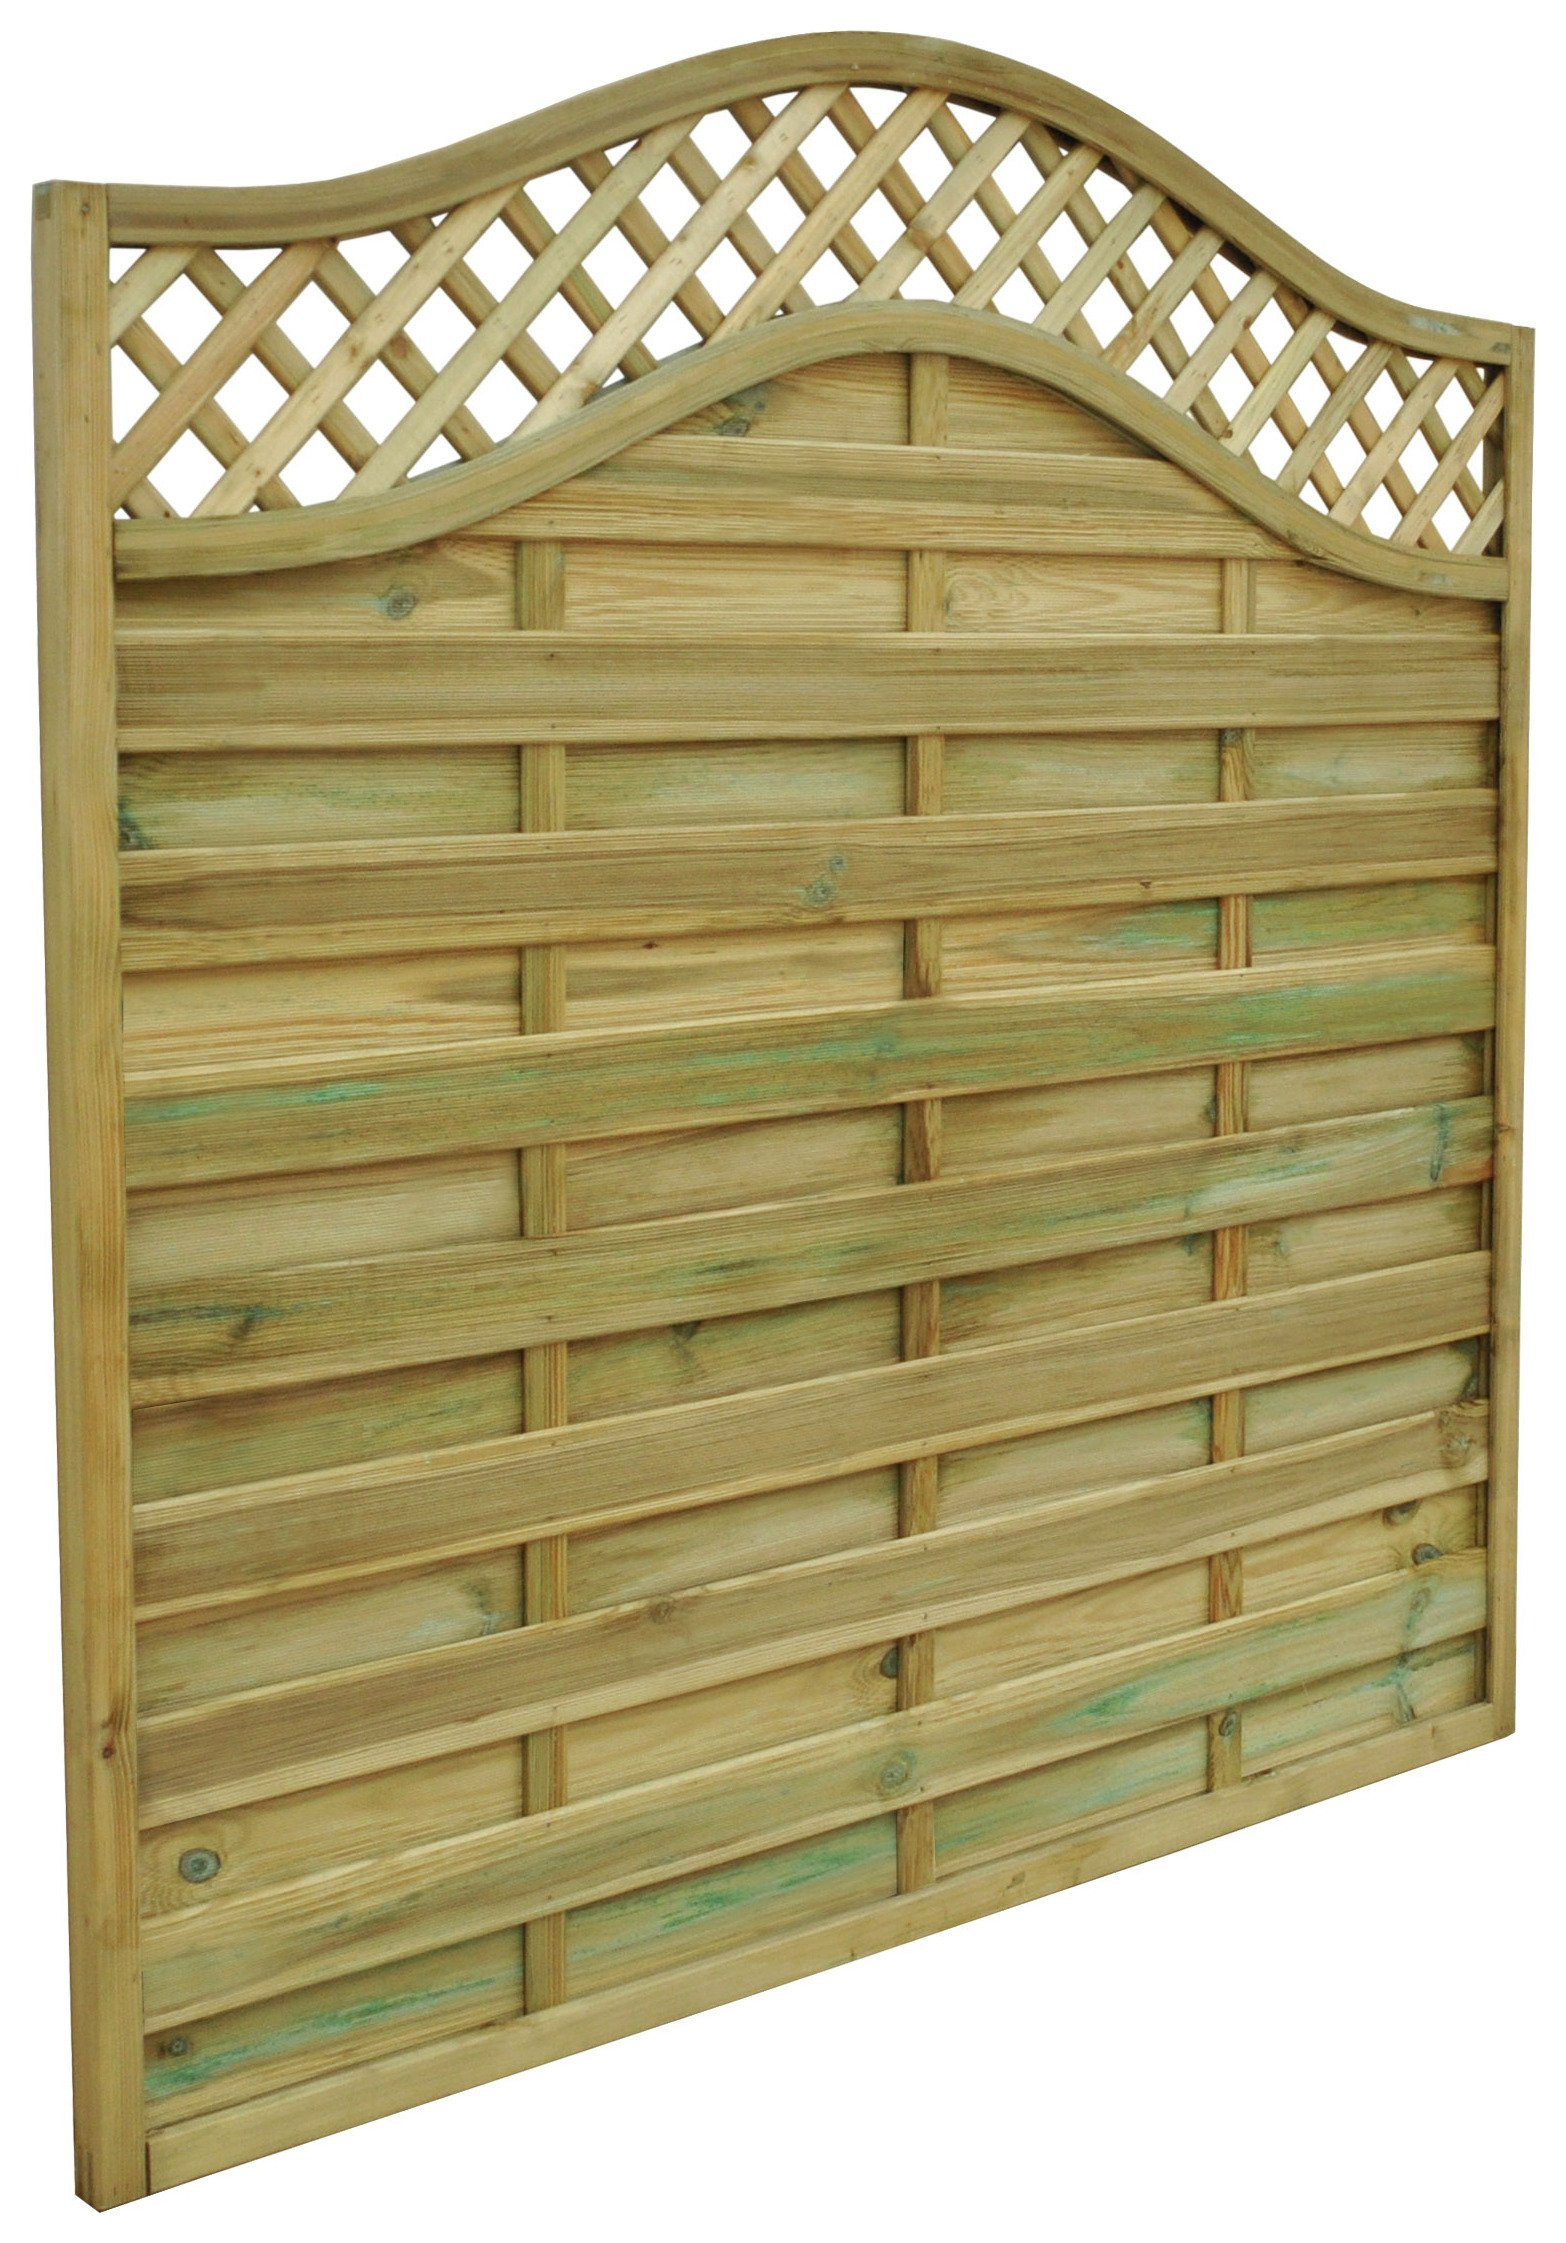 Forest 1.2m Prague Fence Panel - Pack of 20. lowest price